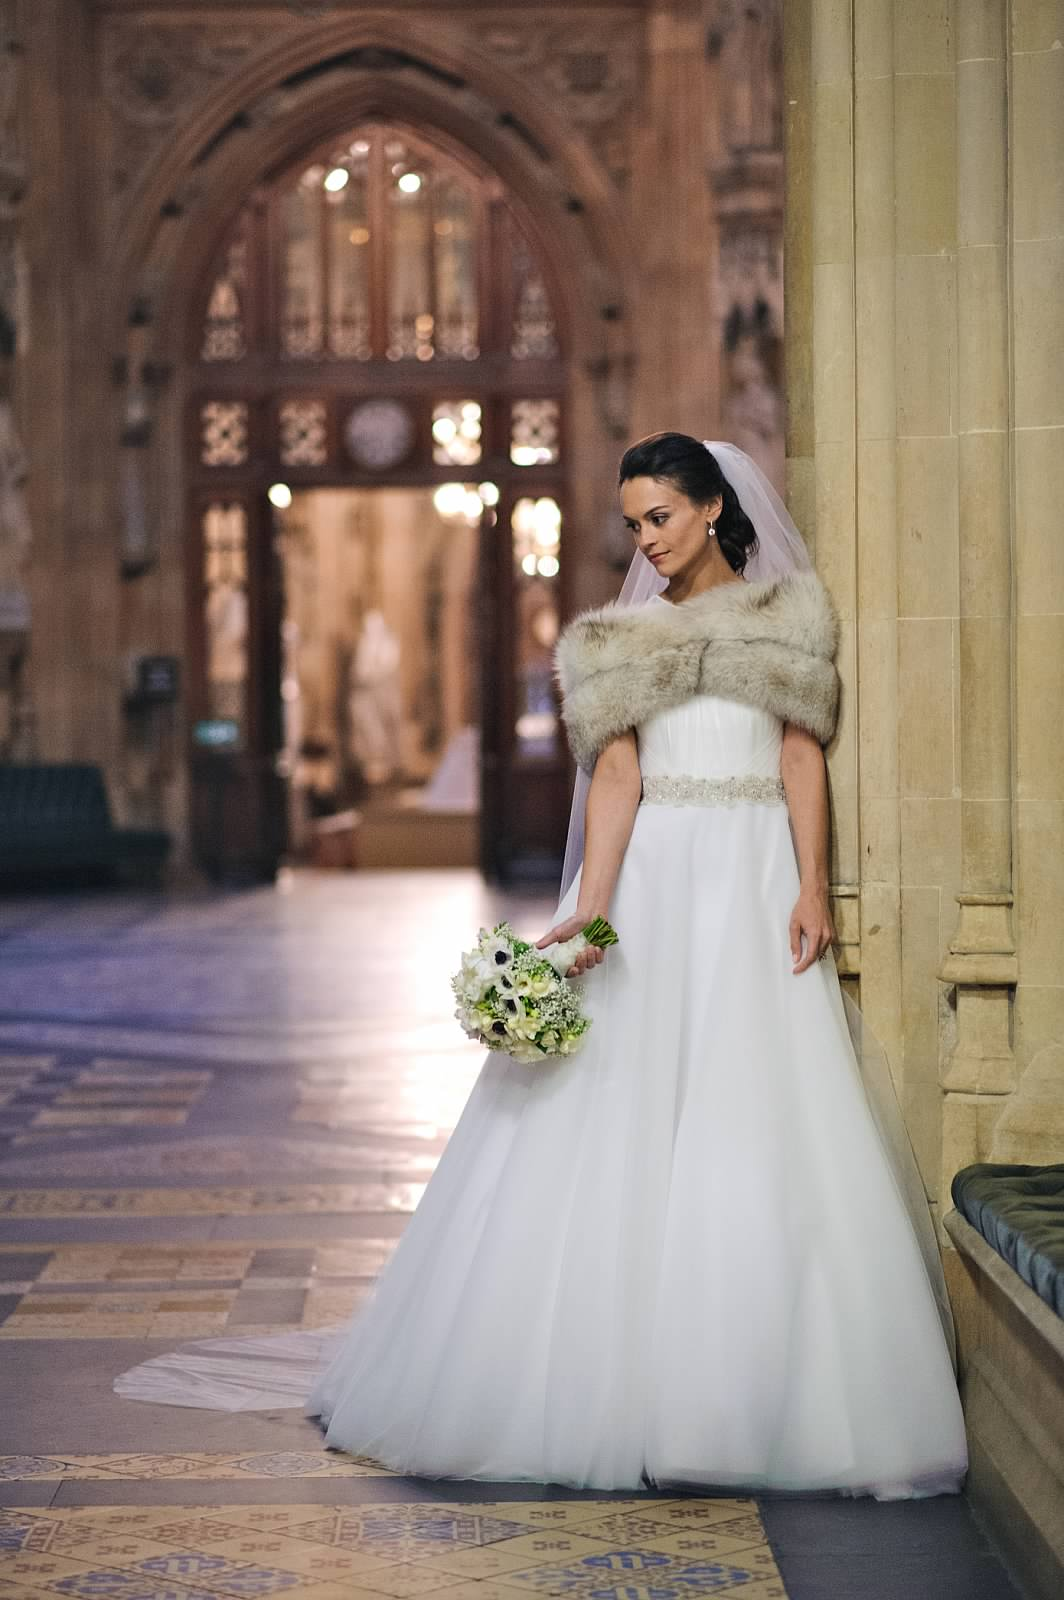 wedding dress. wedding makeup and bridal hair in a soft low bun hairstyle. By Pam Wrigley wedding makeup artist and bridal hair stylist, Westminster Abbey London.